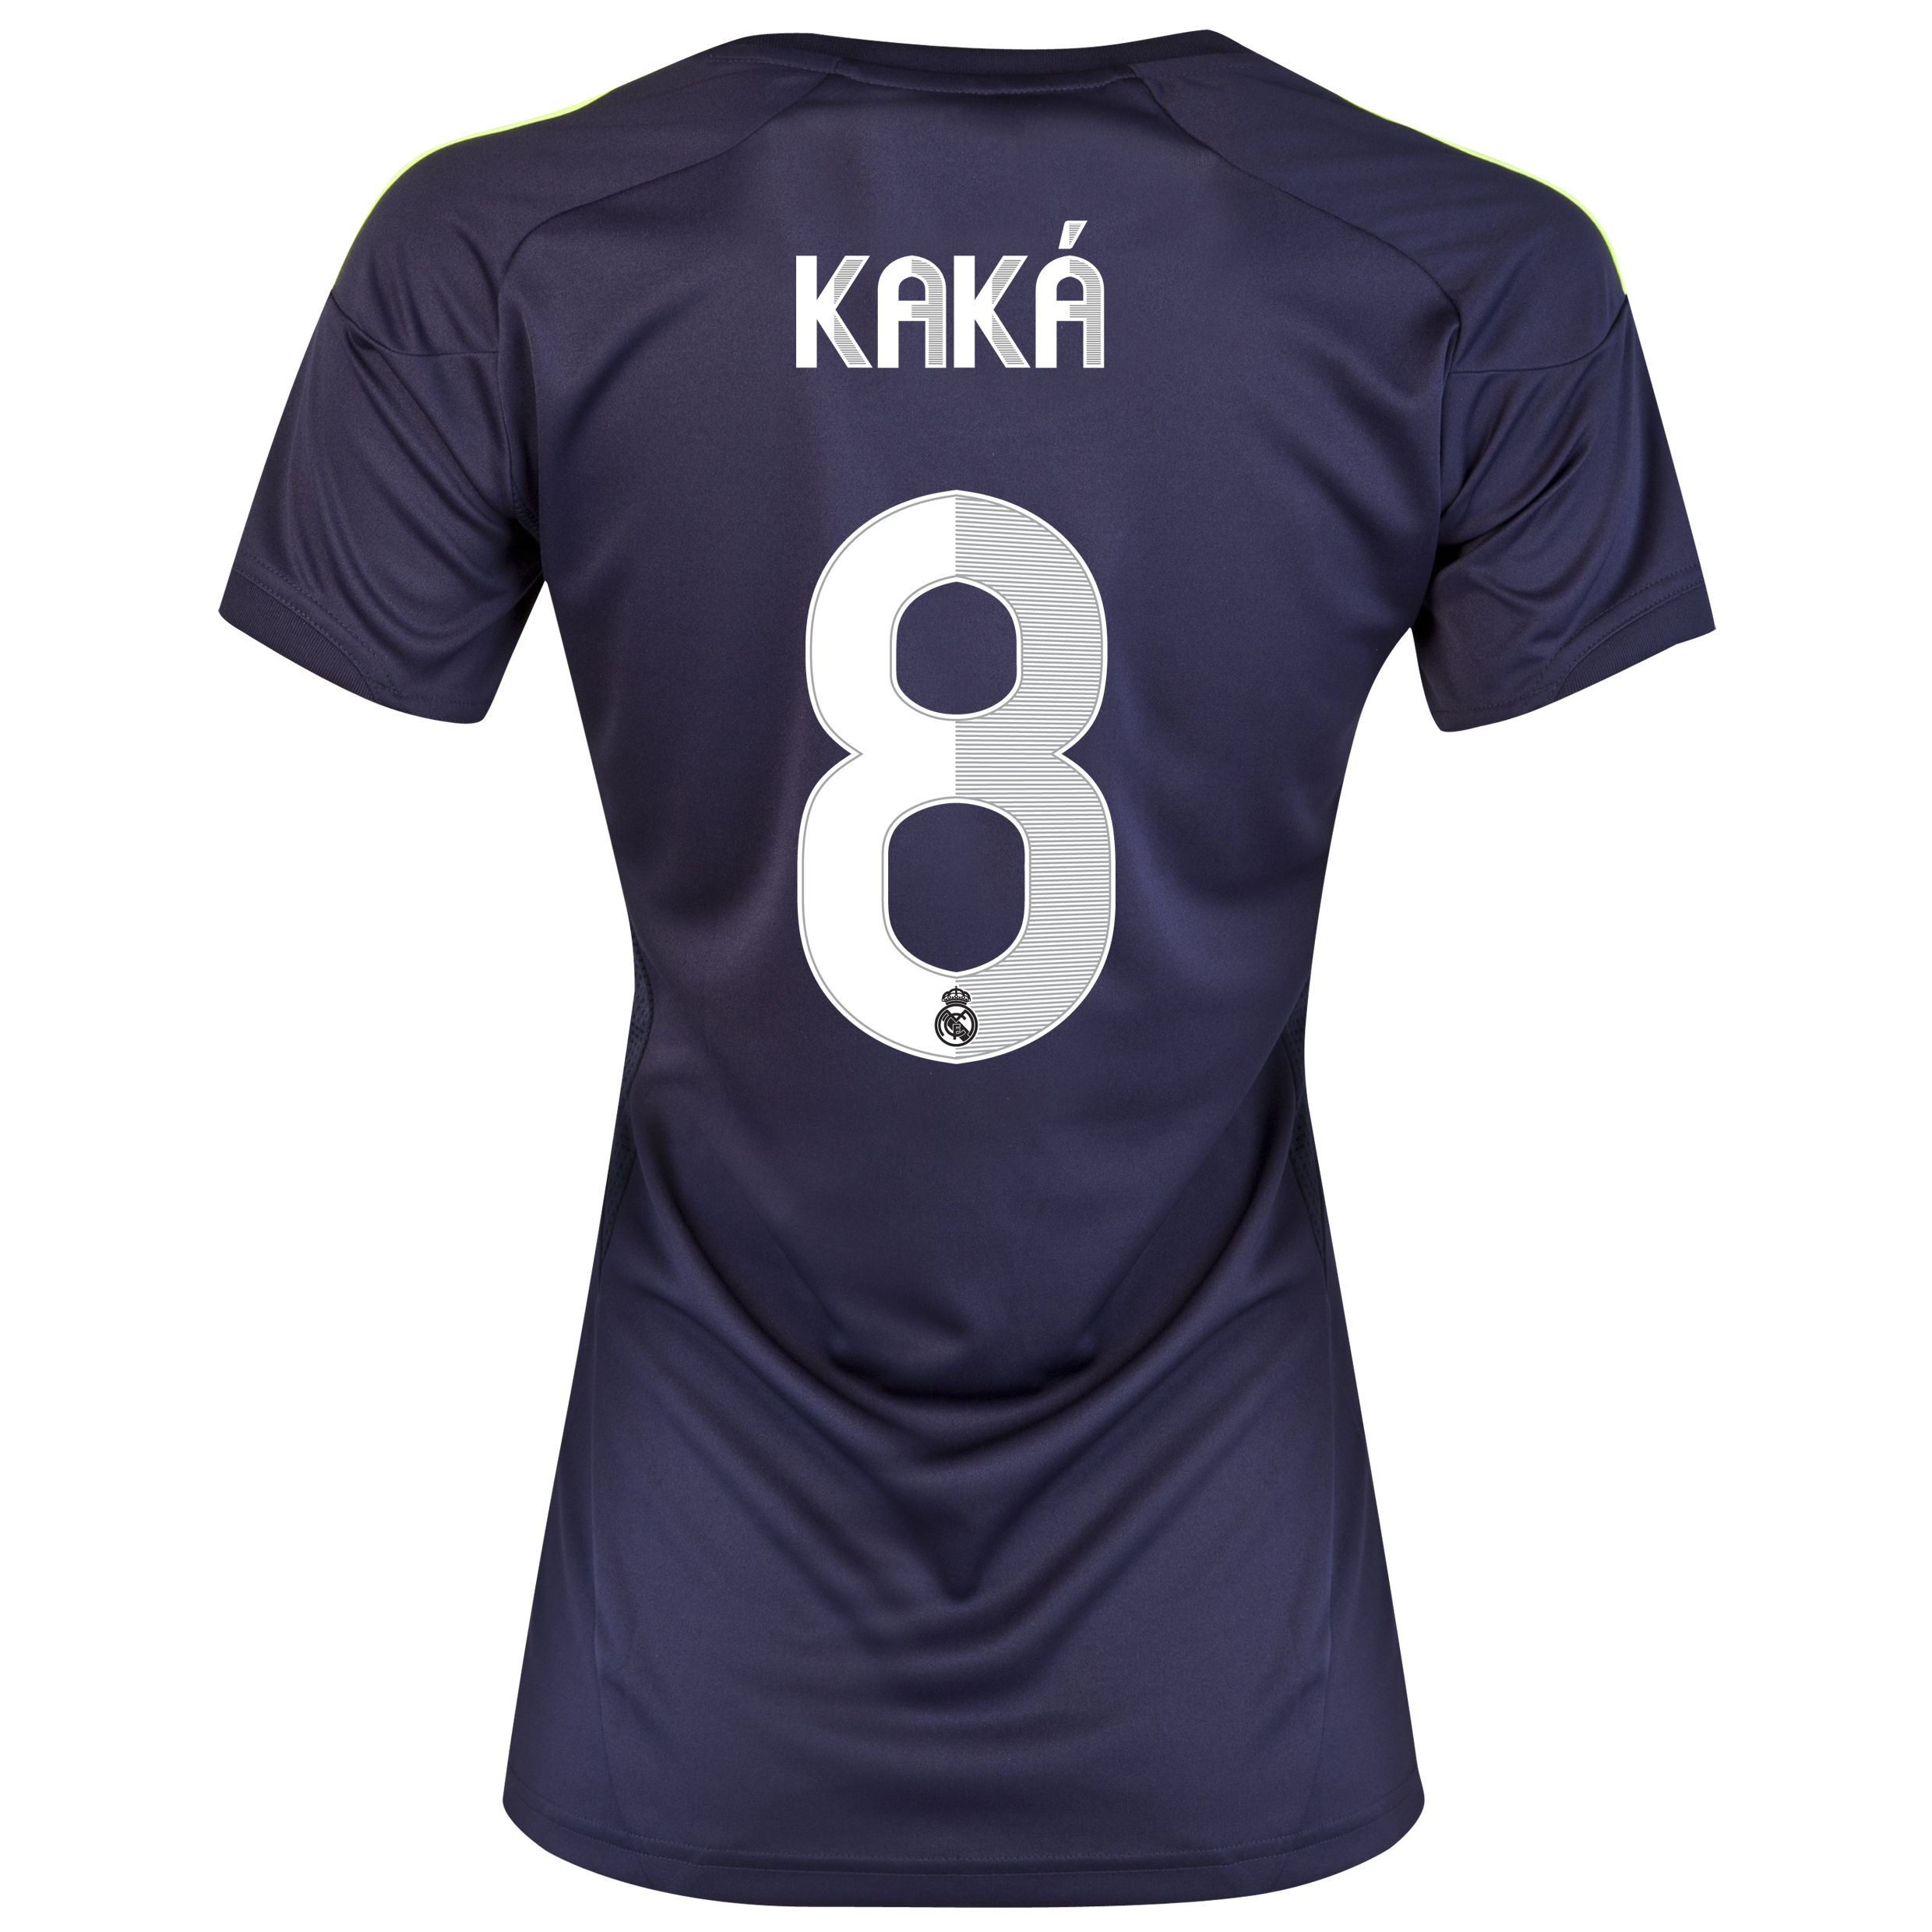 Camiseta visitante Real Madrid 2012/13 con impresin 8 Kak - Mujer